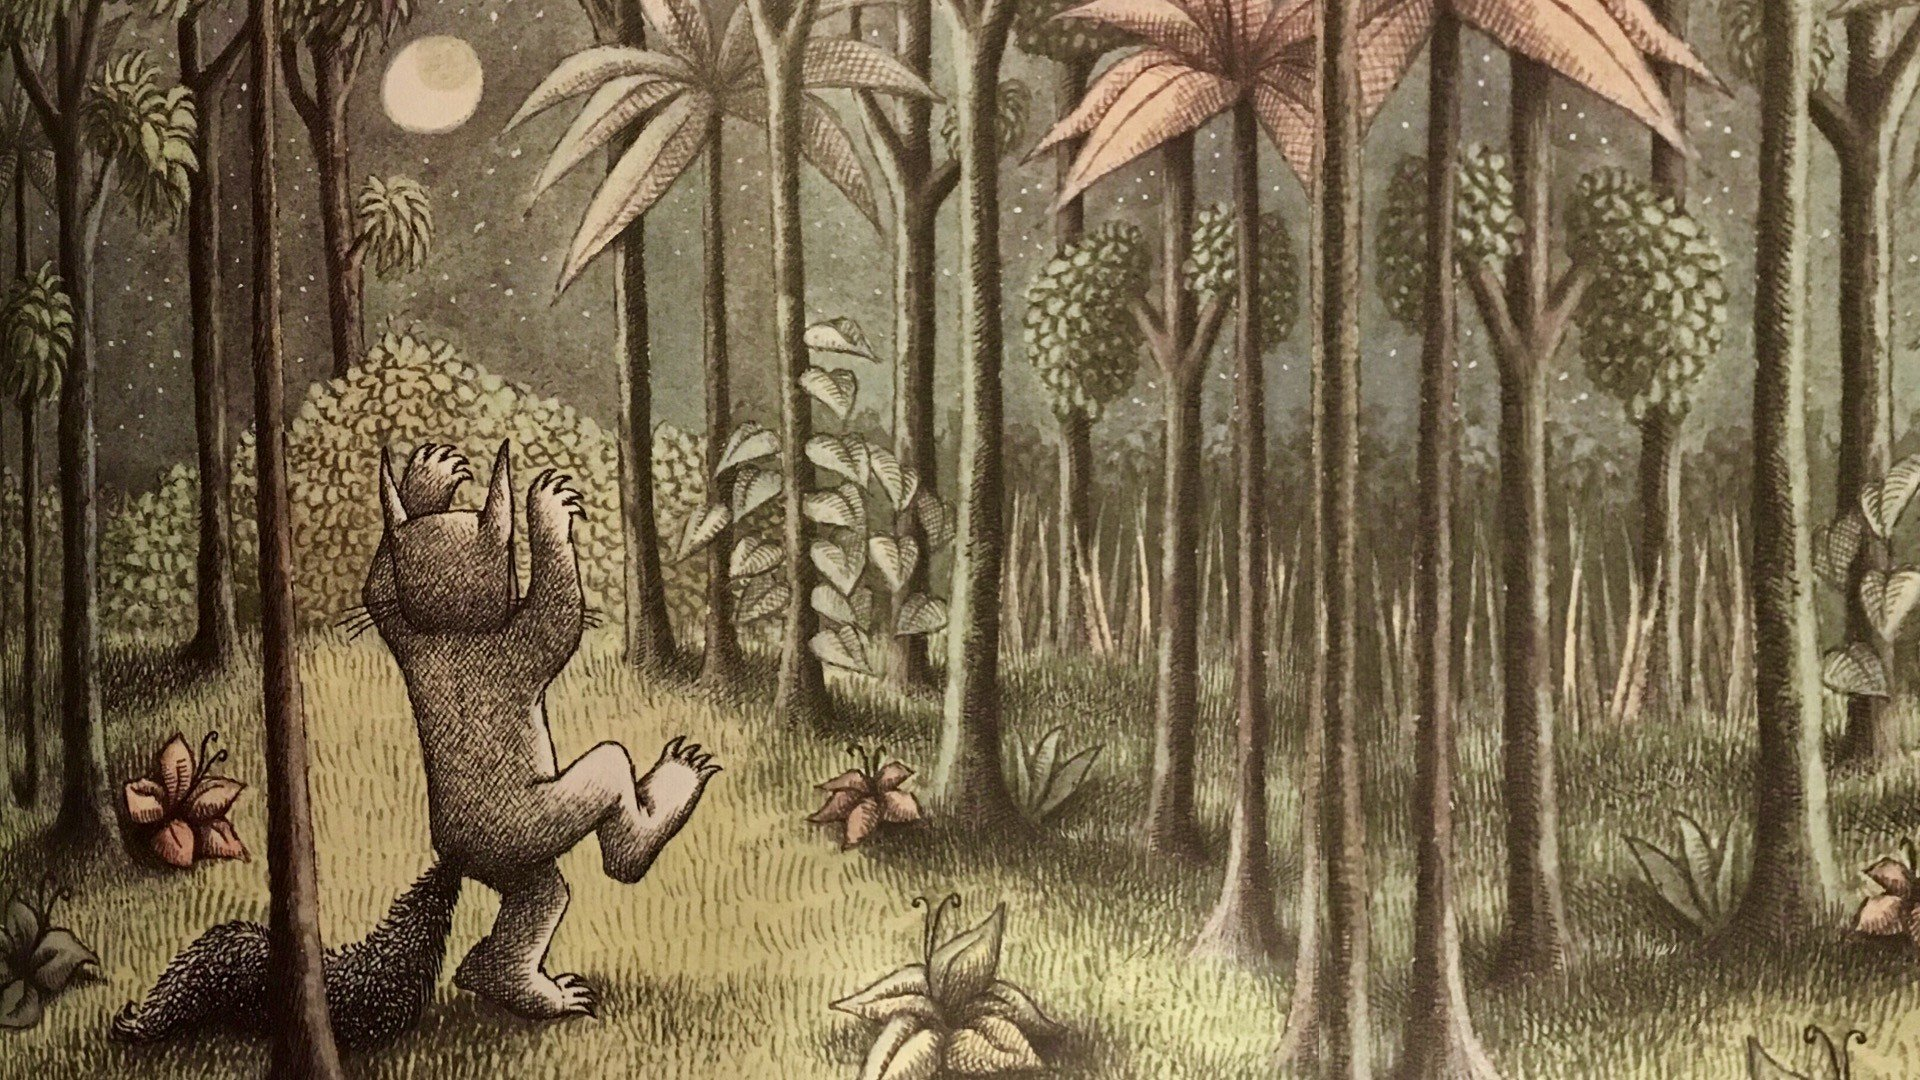 Maurice Sendak Where The Wild Things Are Night Forest Hd